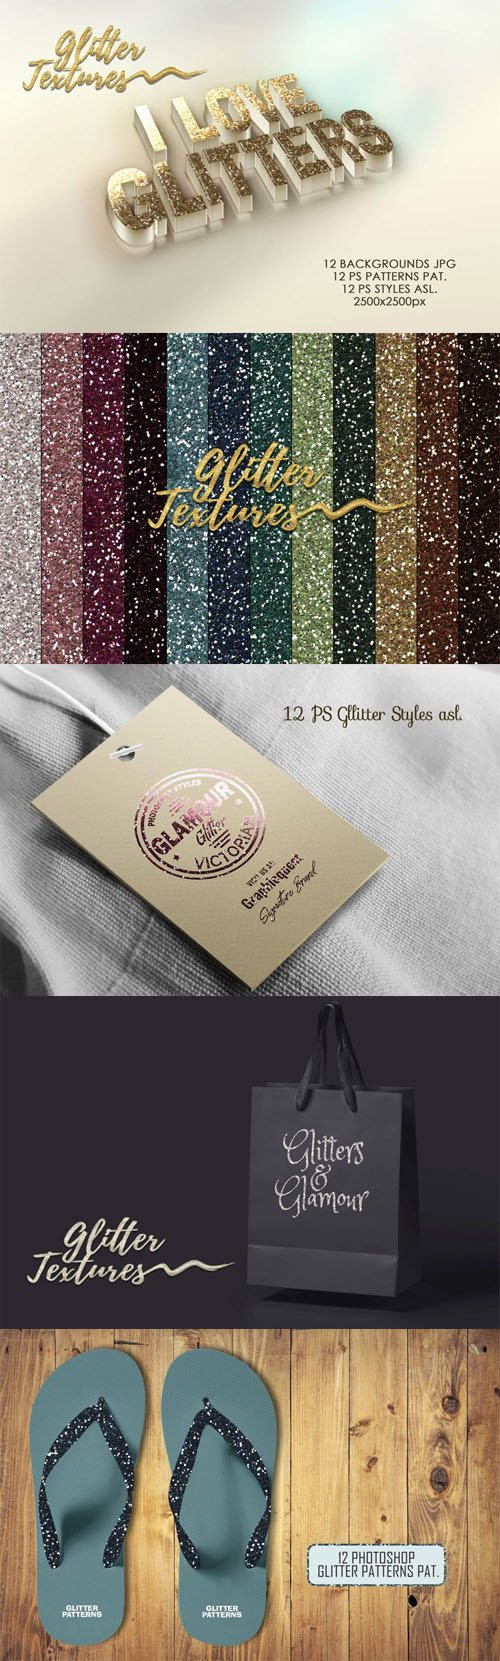 12 Glitter Textures Pack - Photoshop Styles & Patterns